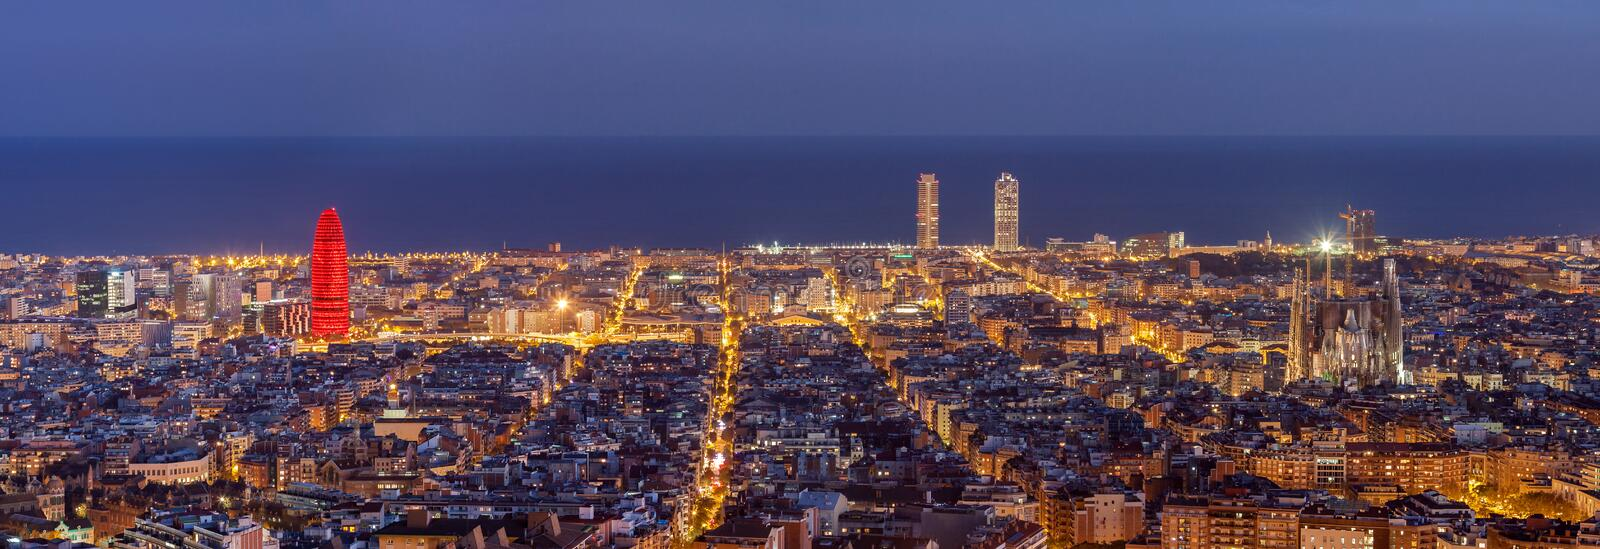 Download Barcelona at night stock photo. Image of attraction, landscape - 37640254